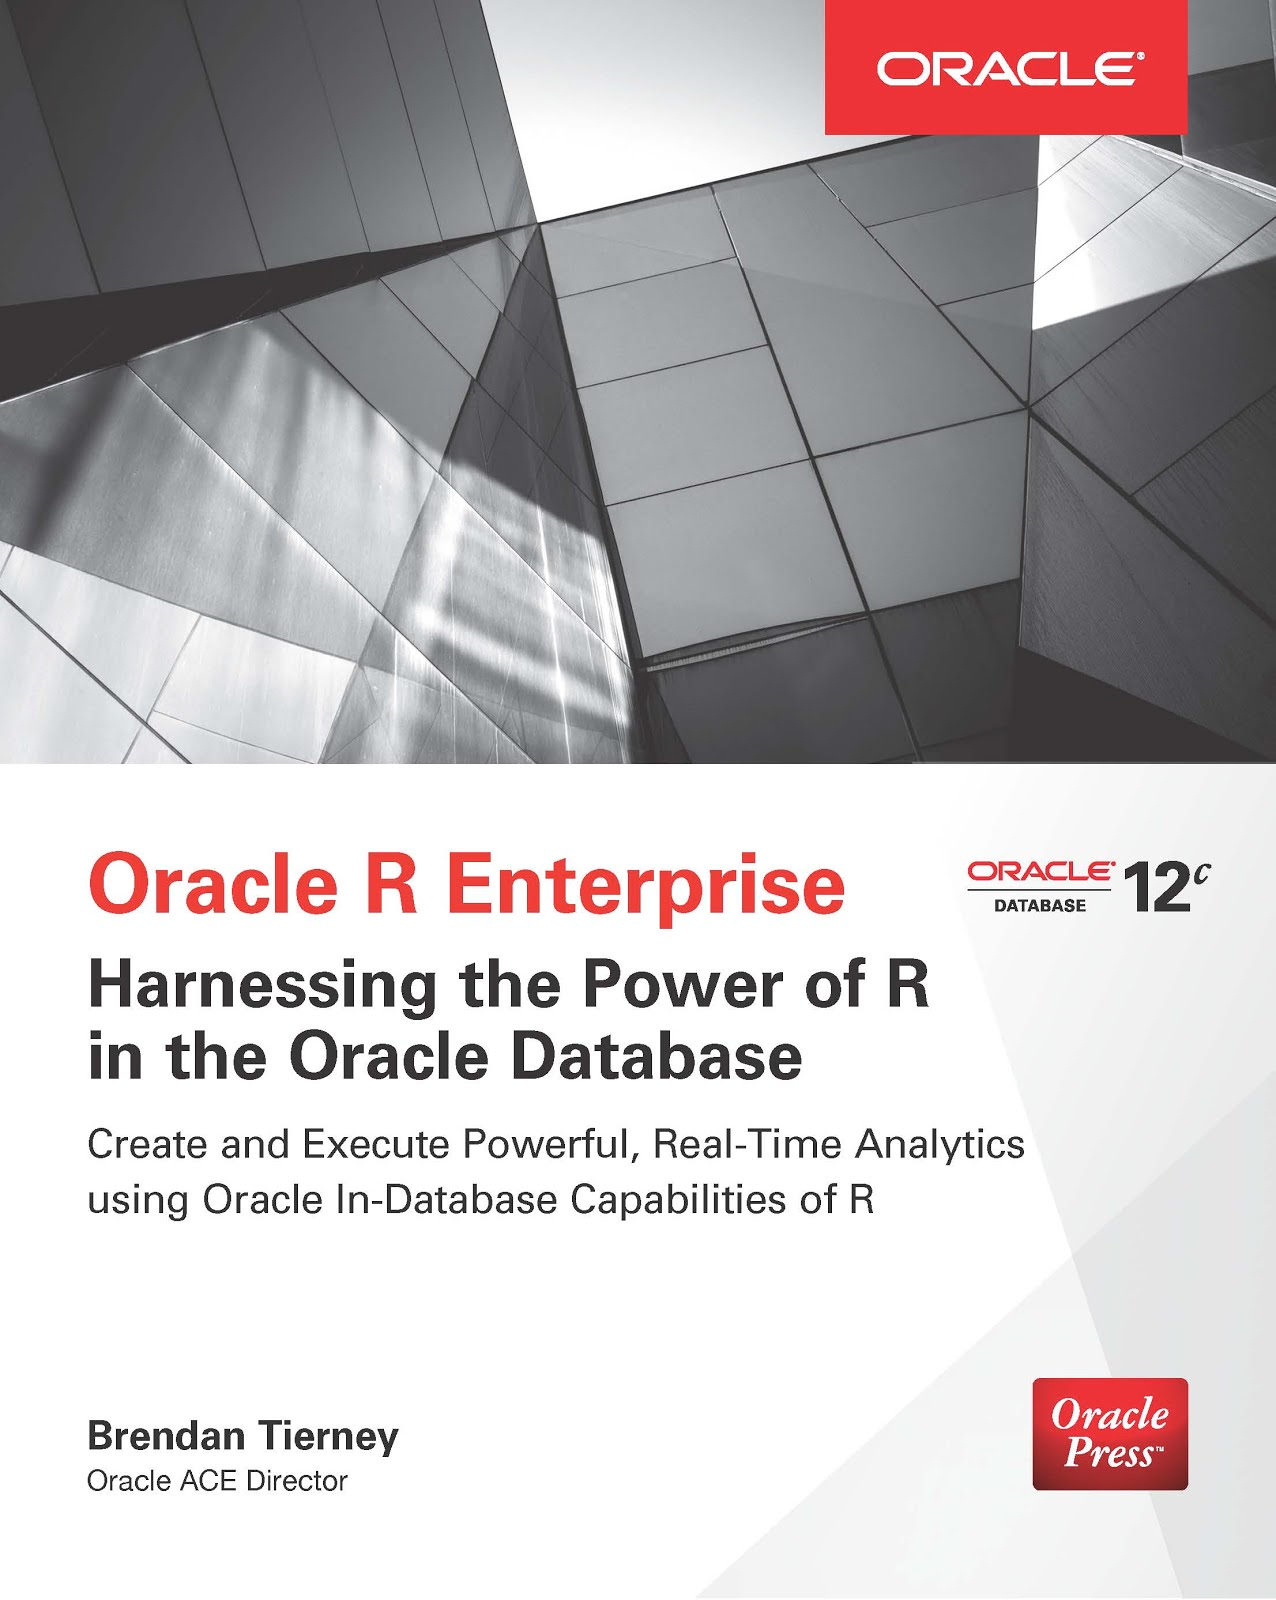 Buy my Oracle R Enterprise Book